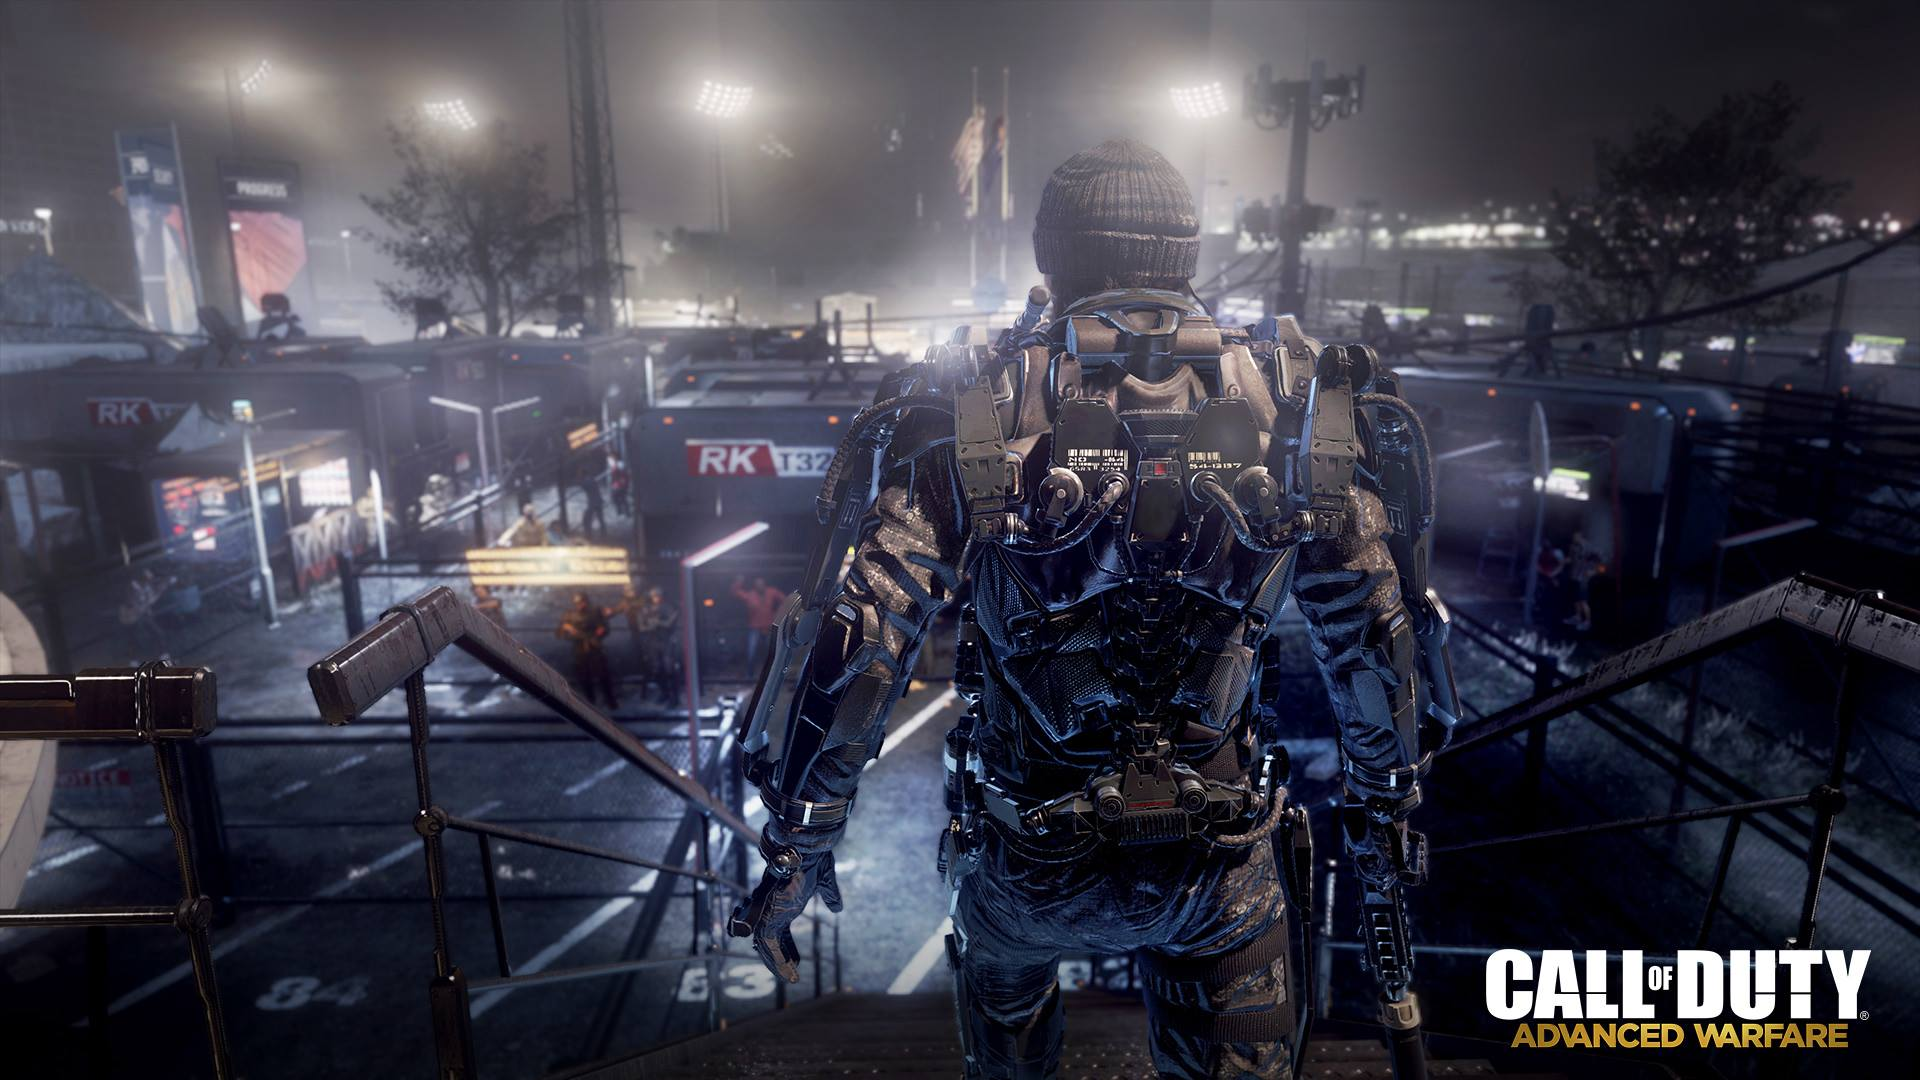 Call Of Duty 551965 Hd Wallpaper Backgrounds Download